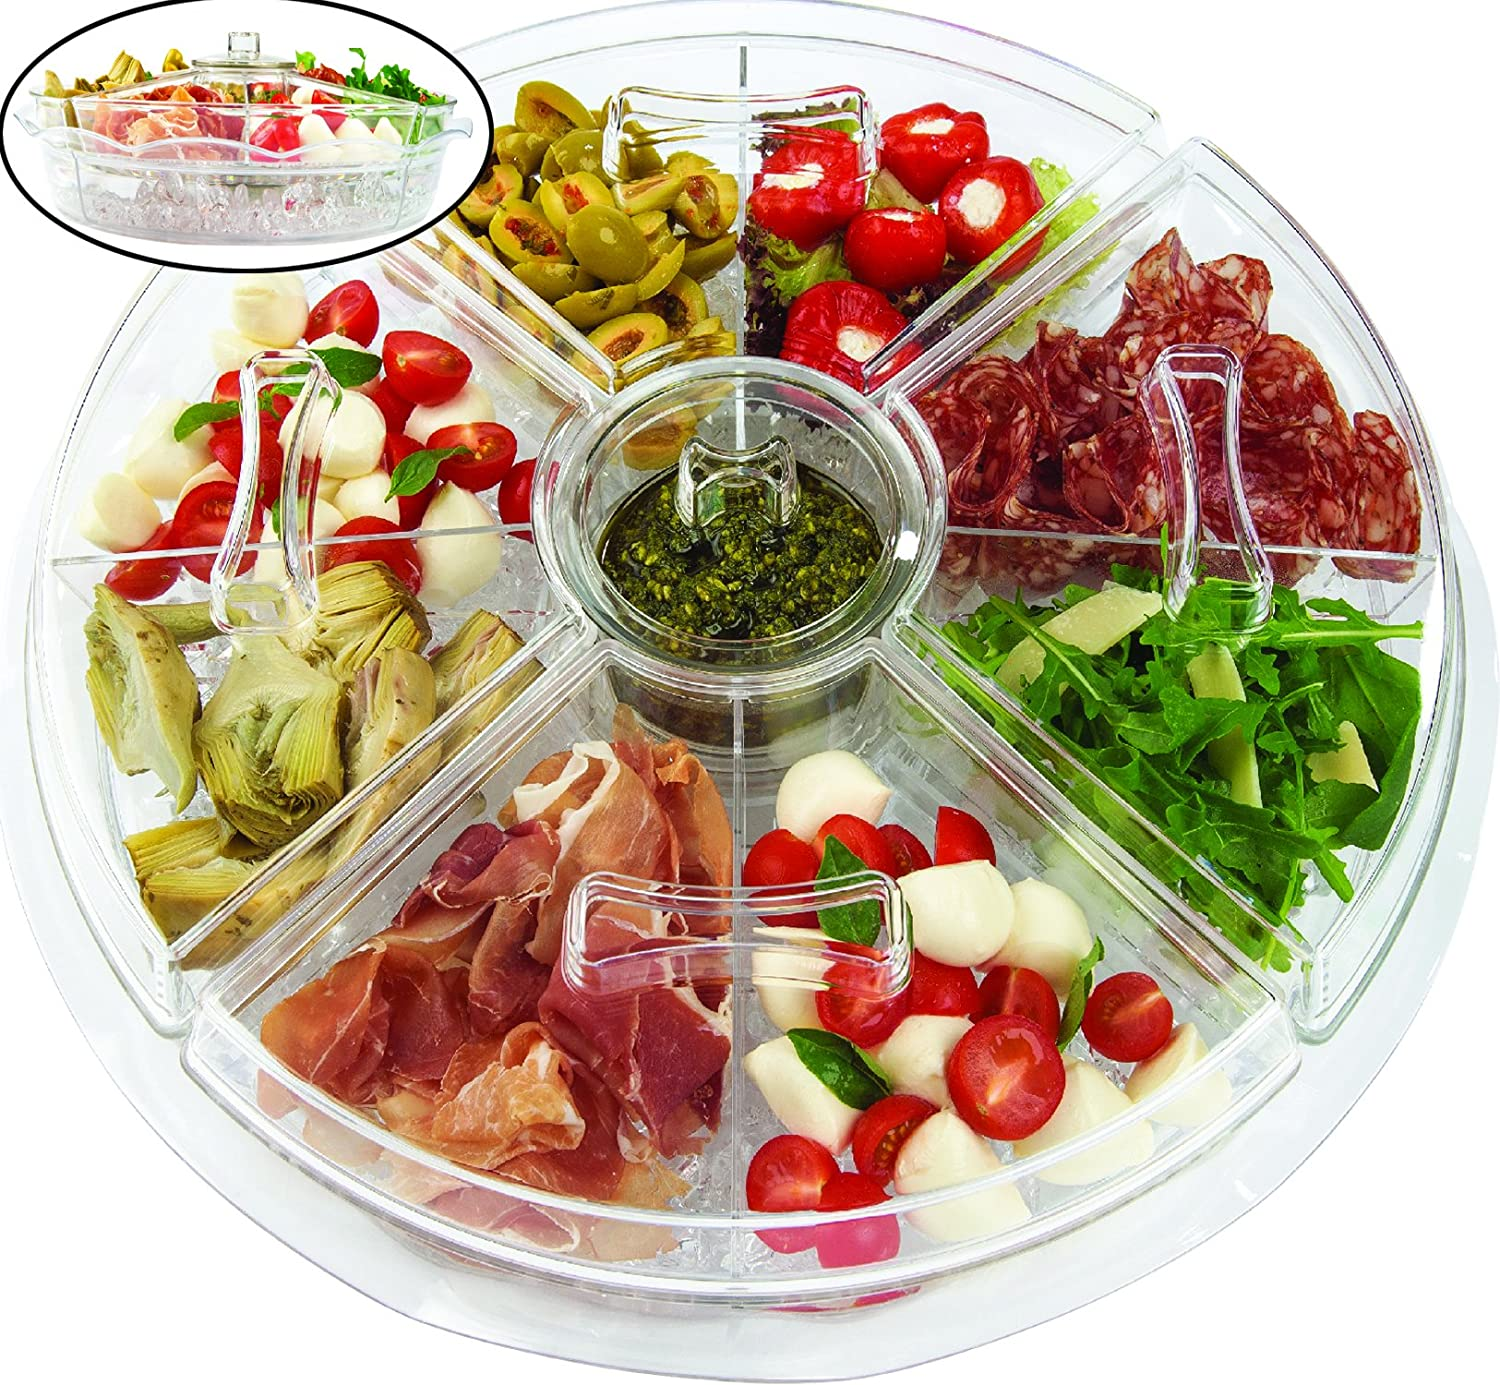 Amazon.com | Jumbl Appetizer Serving Tray with Lids | 4 Revolving Duel Cups-on-Ice Serving Trays  sc 1 st  Amazon.com : sectional tray - Sectionals, Sofas & Couches